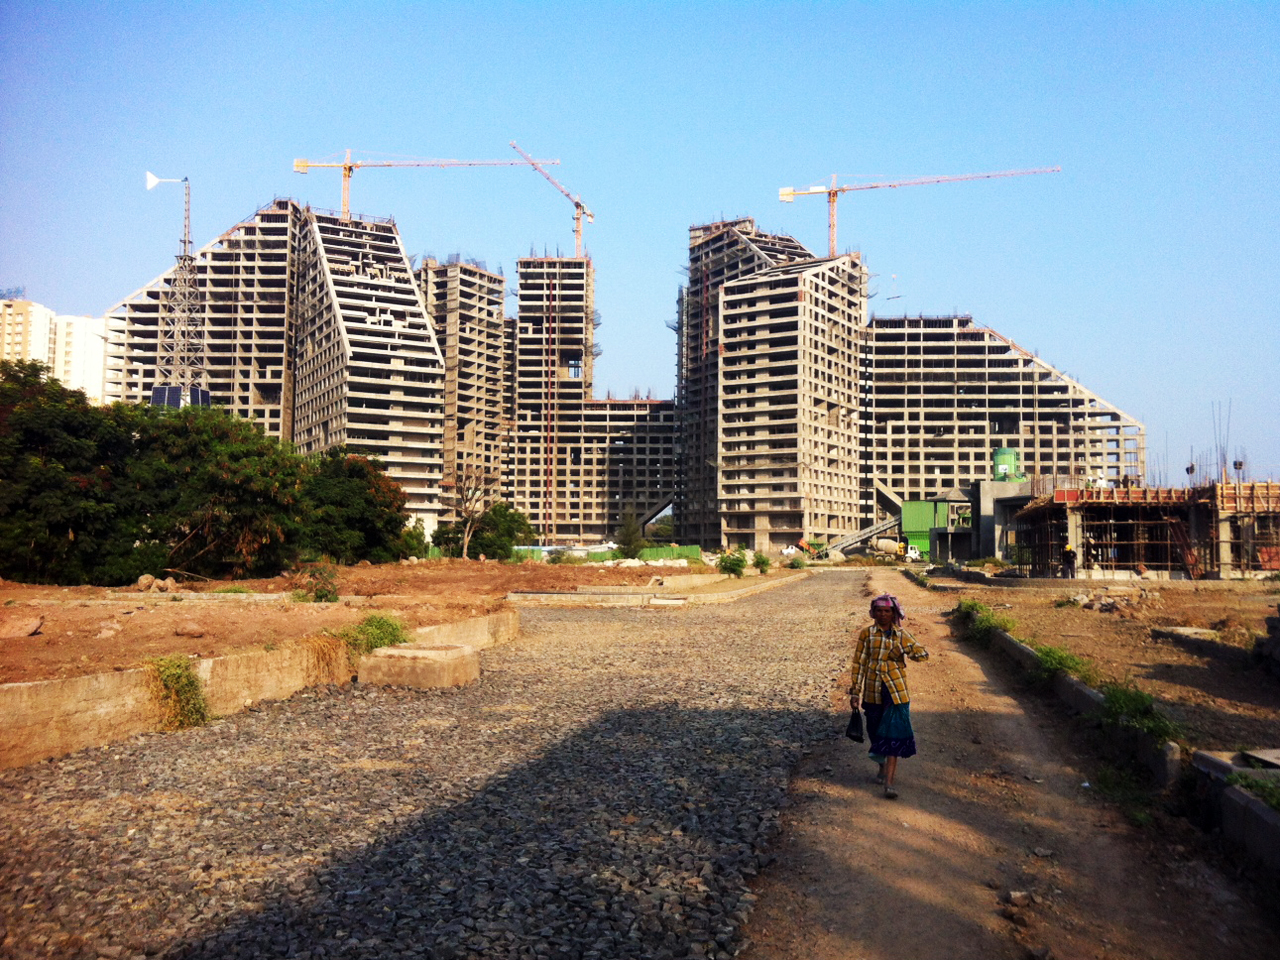 MVRDV's Future Towers taking shape in India